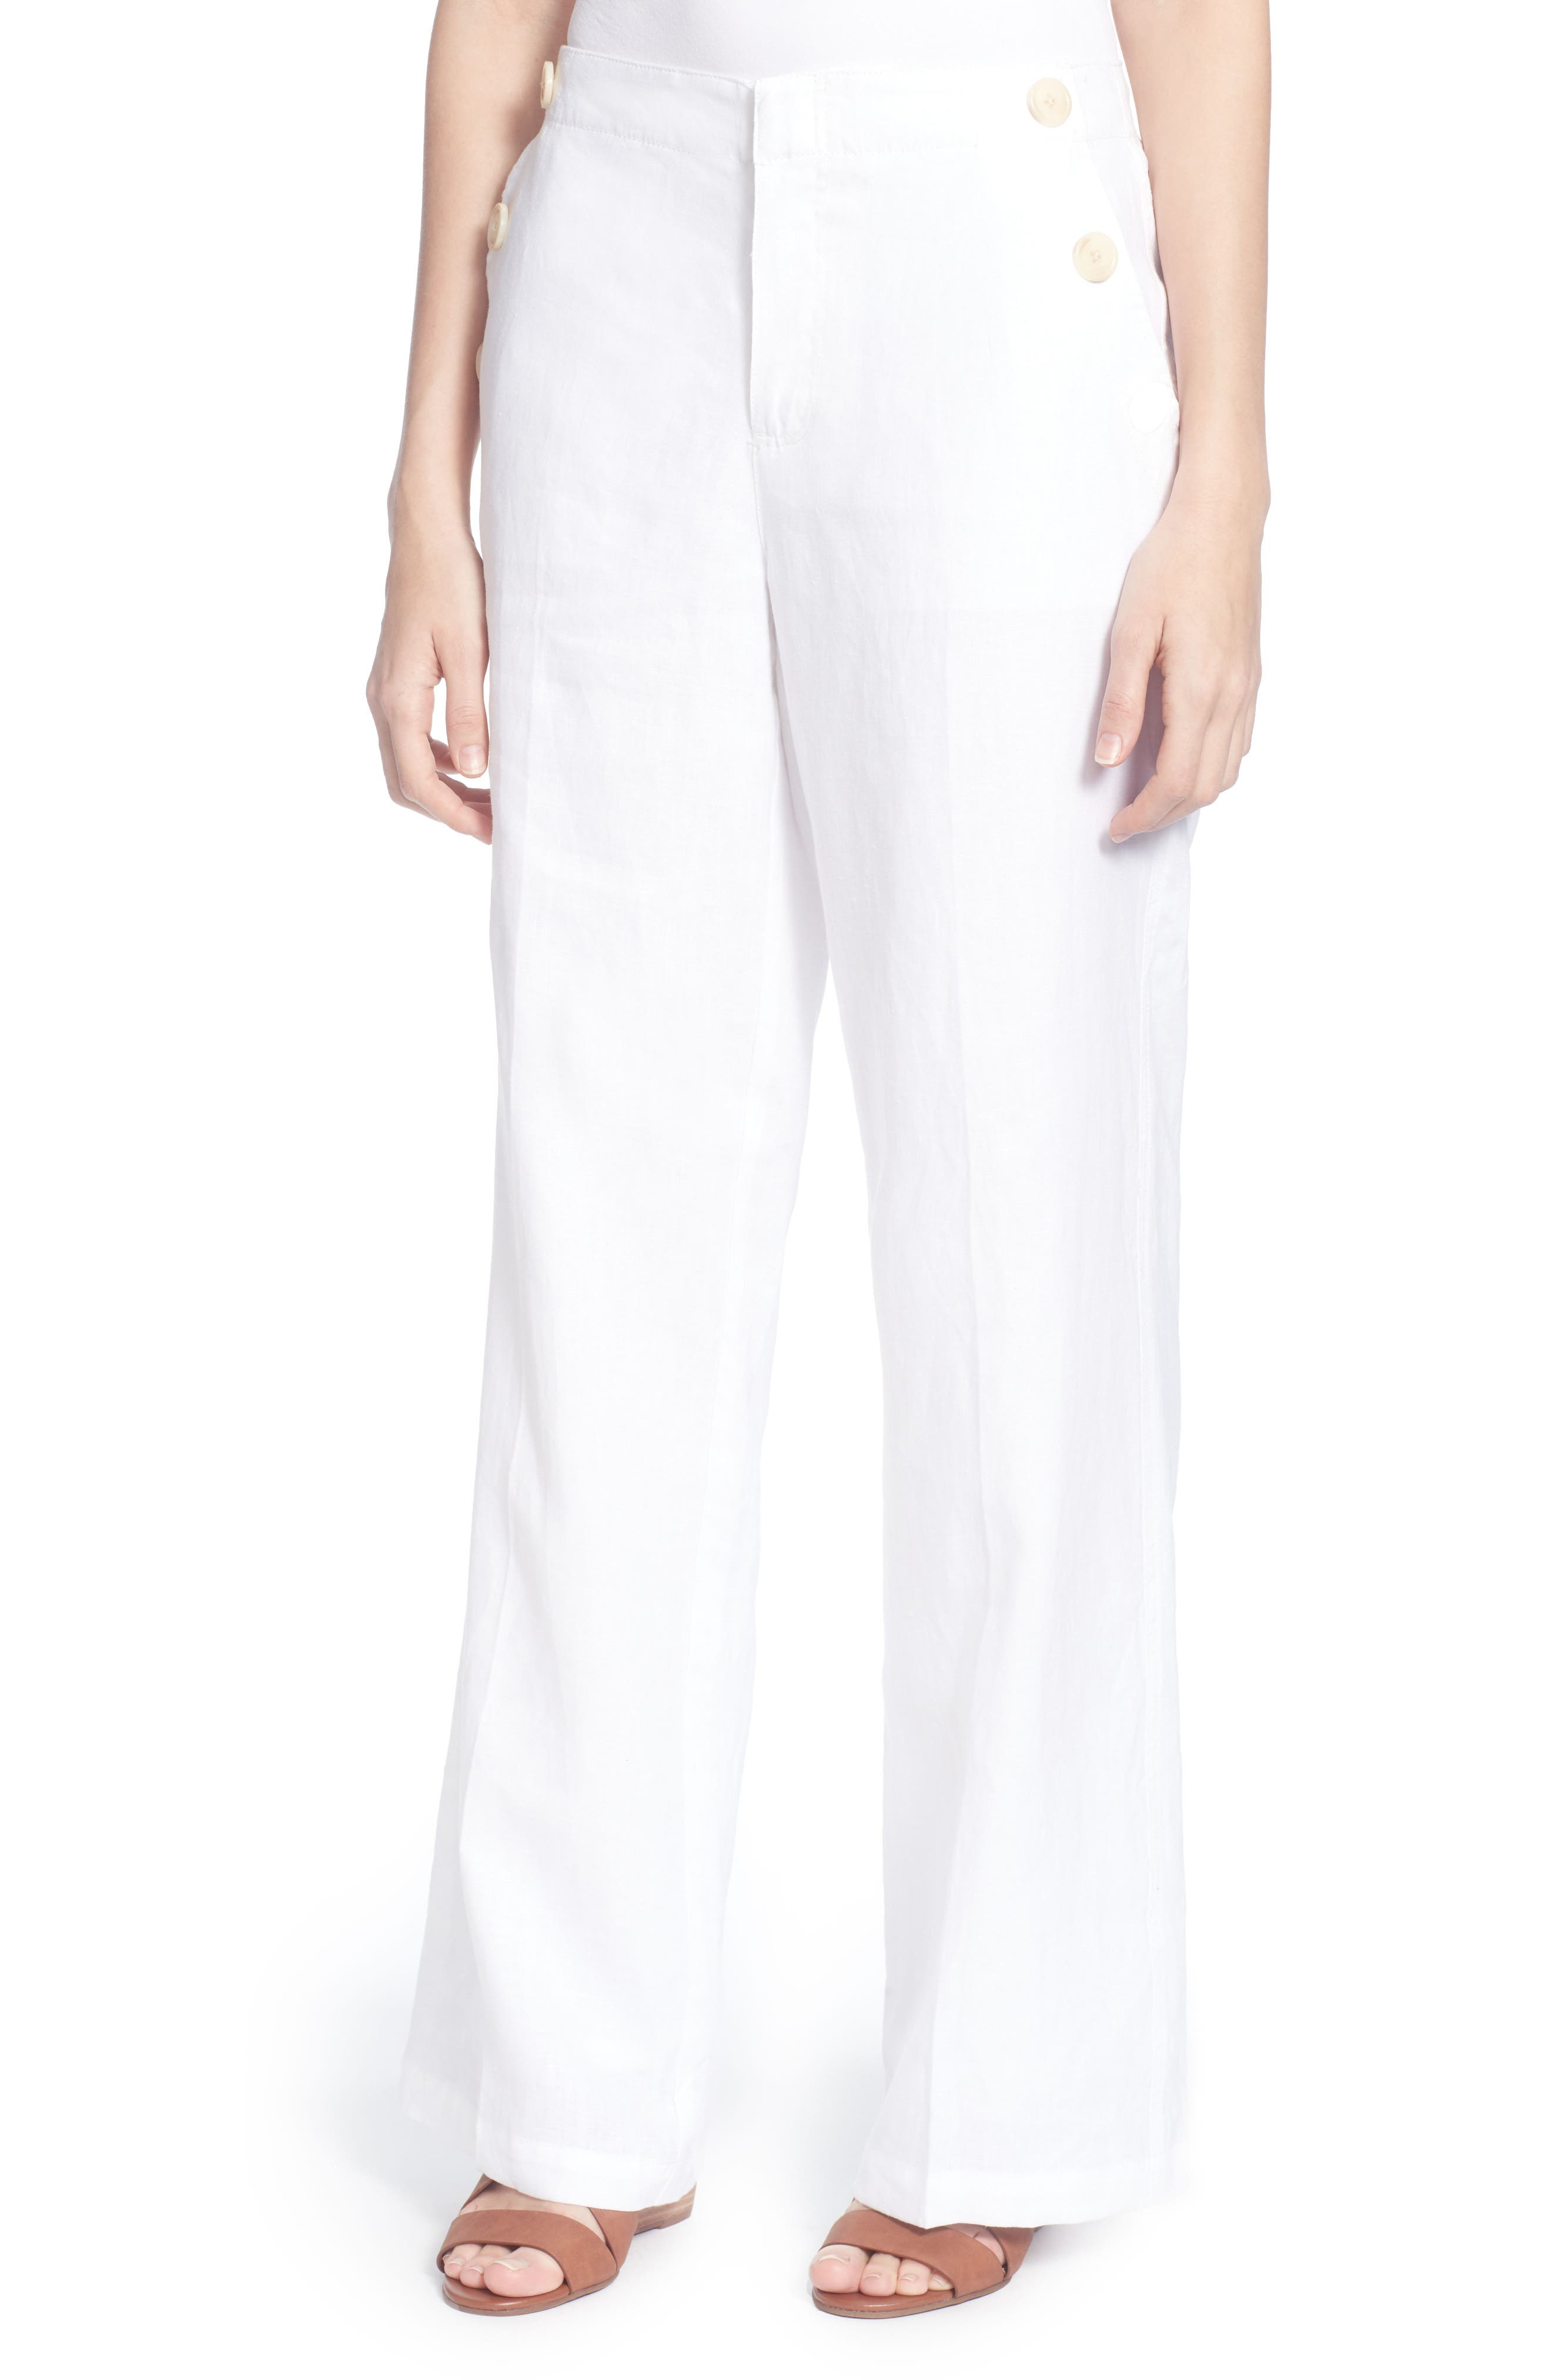 Fritz Linen Sailor Pants,                             Main thumbnail 1, color,                             Bright White